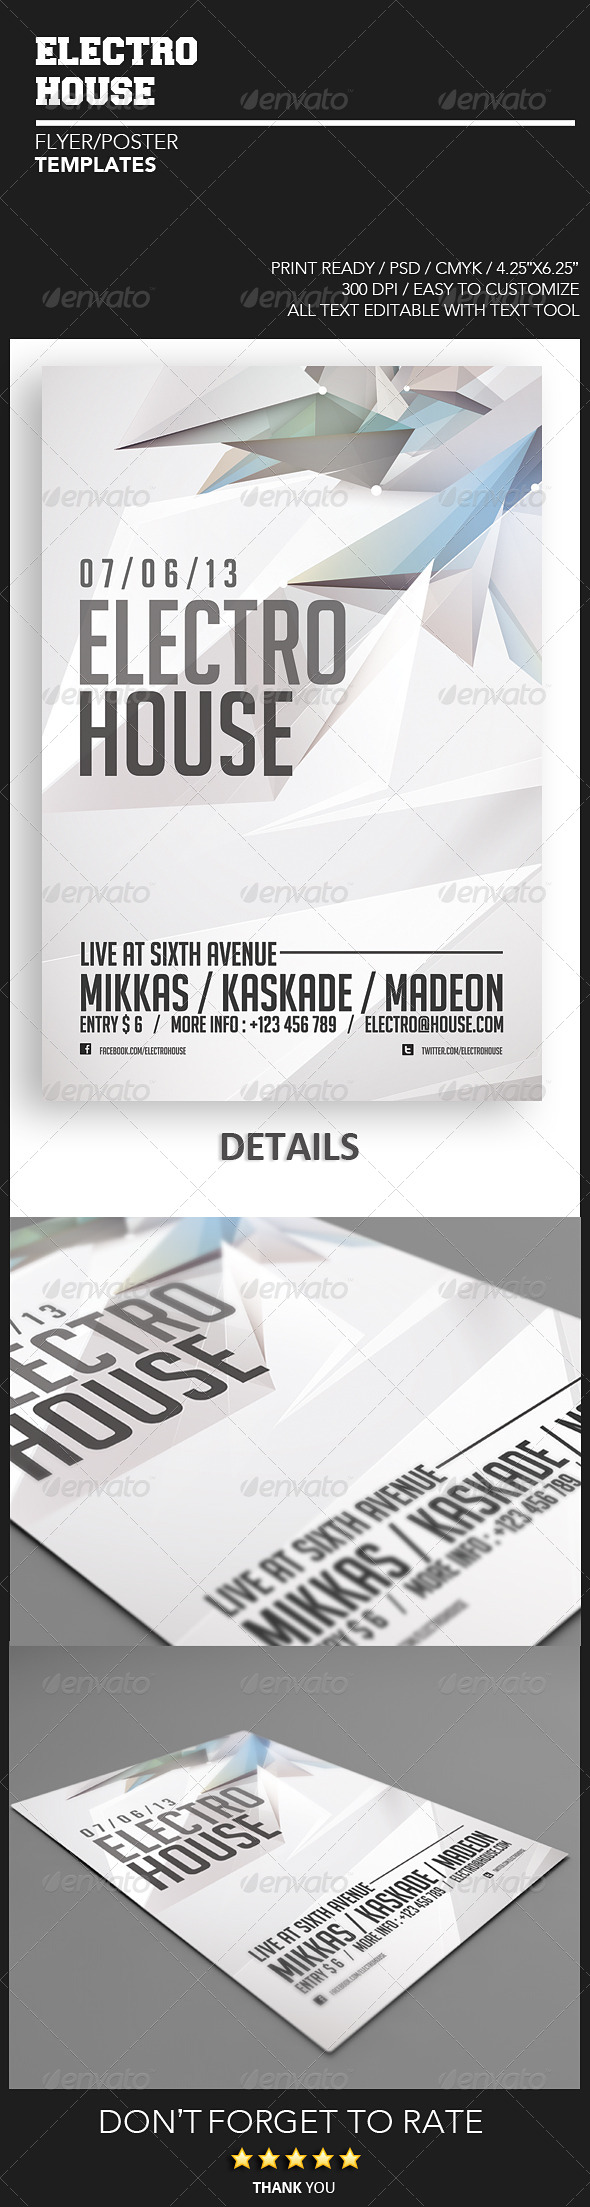 GraphicRiver Electro House Flyer 4887186